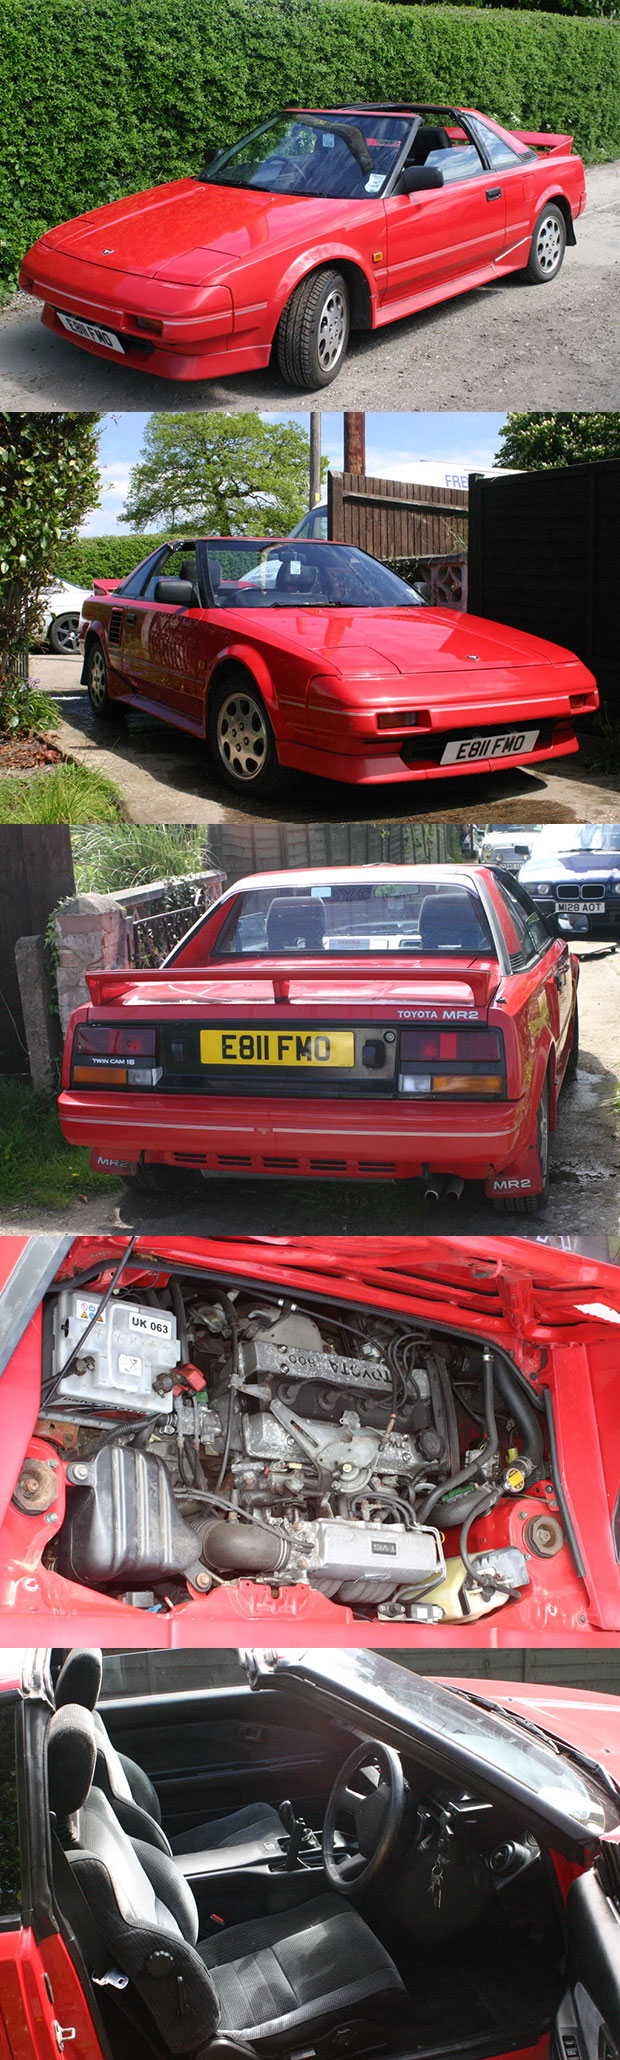 blog-41-wheeler-dealers-mr2-mk1-2